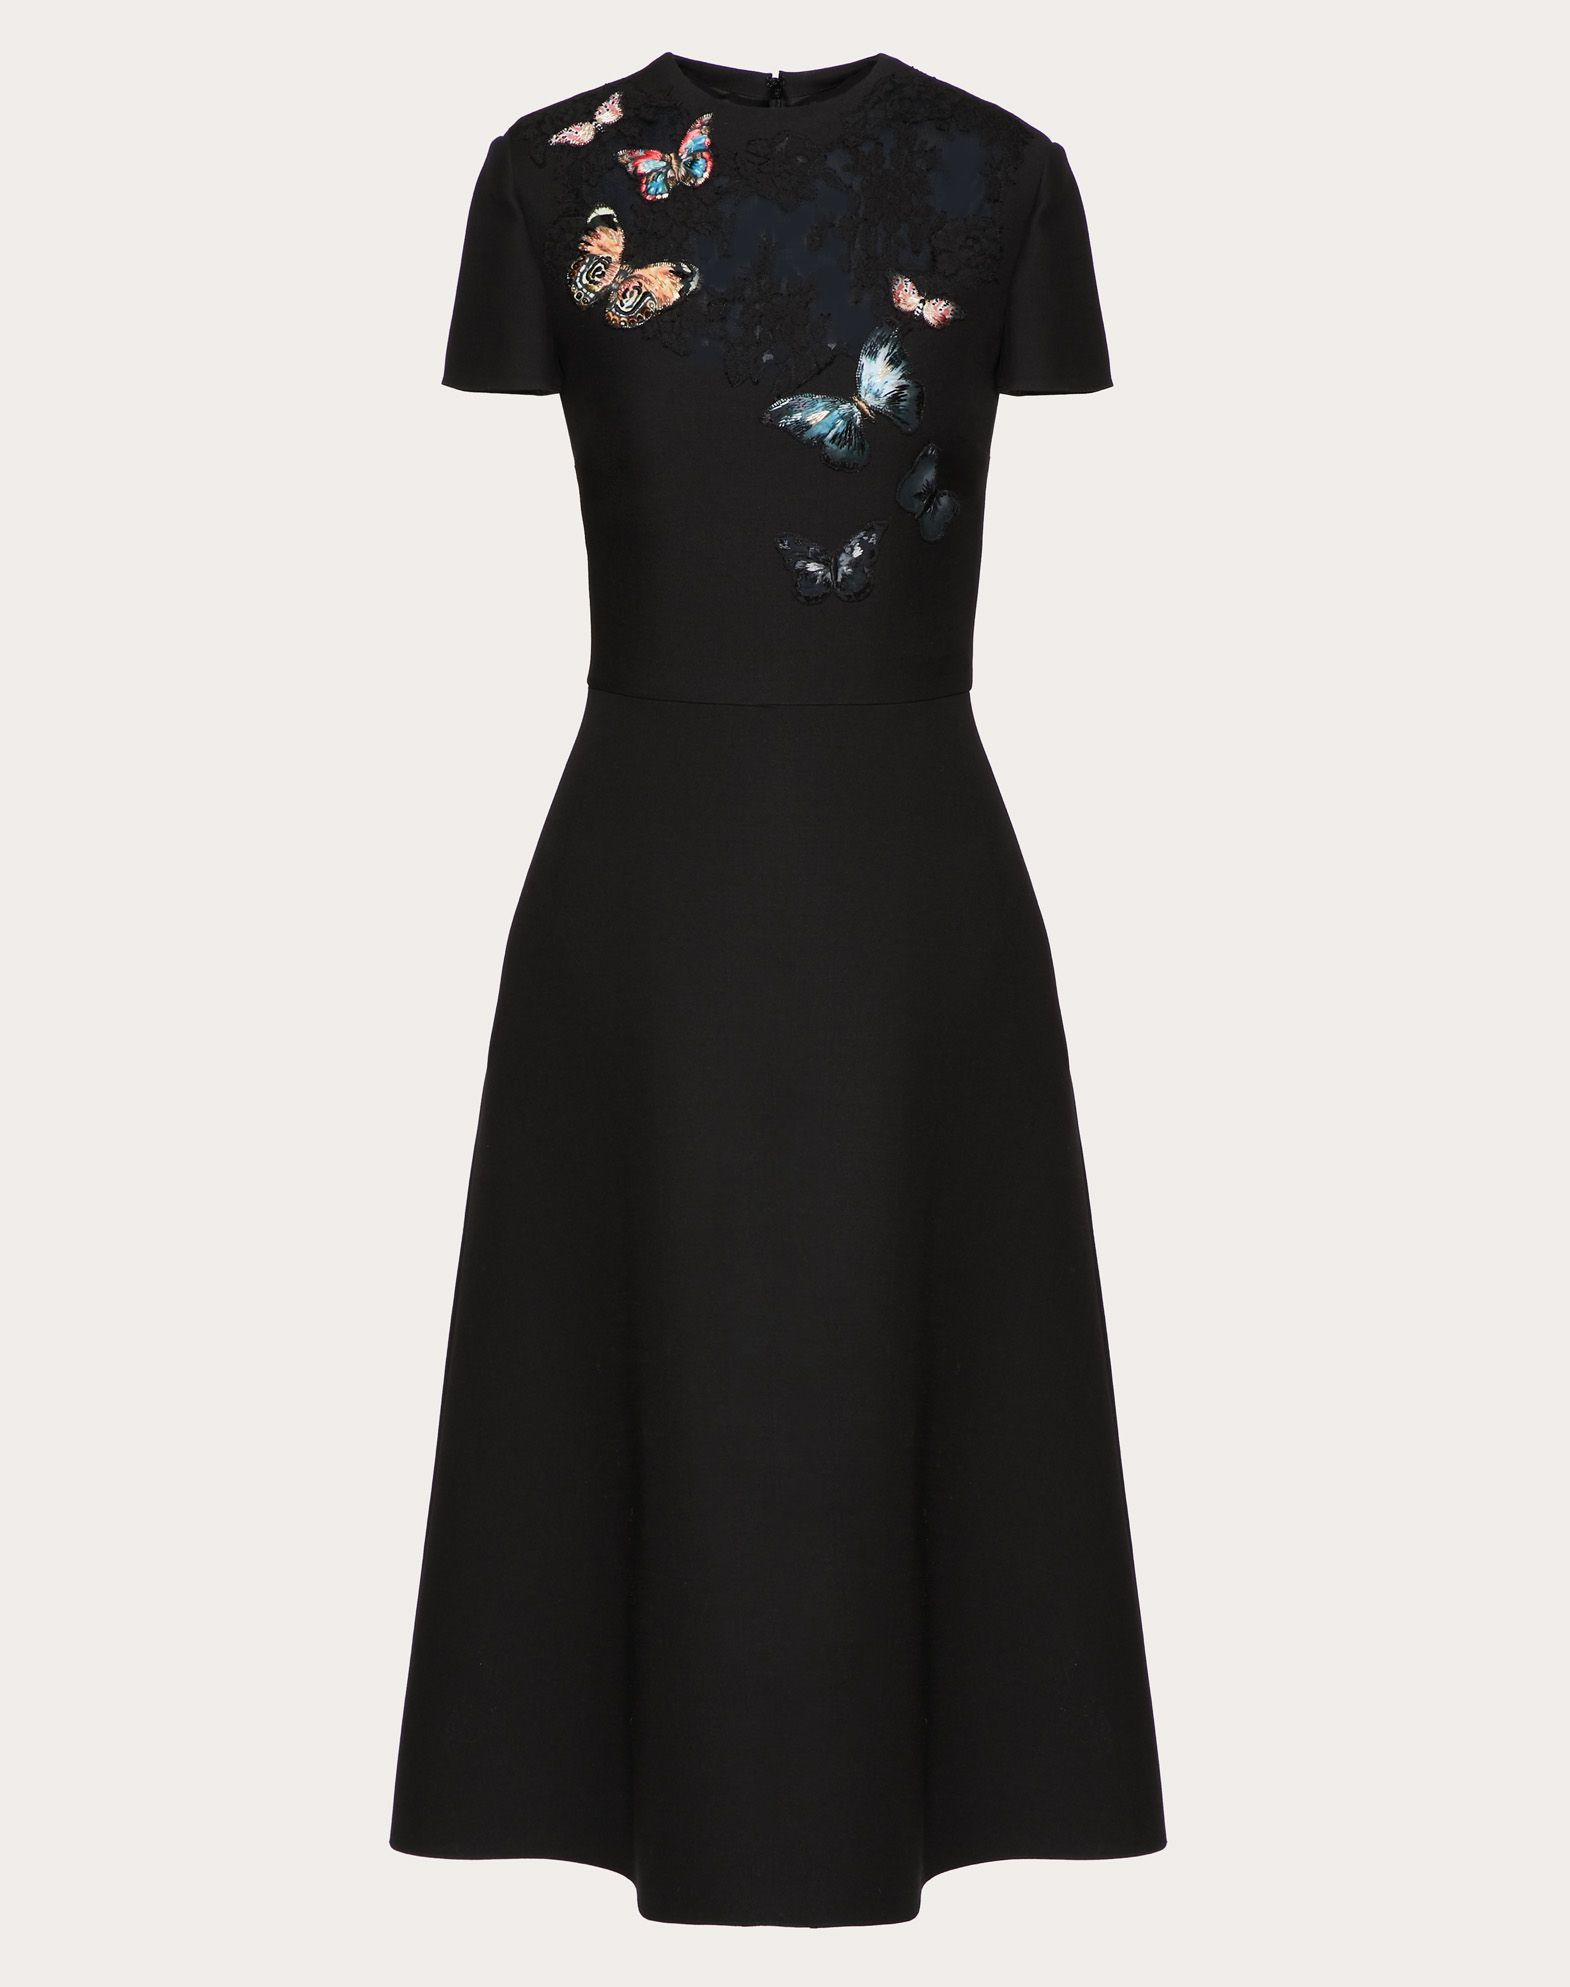 CREPE COUTURE DRESS WITH BUTTERFLY EMBROIDERY AND LACE DETAIL